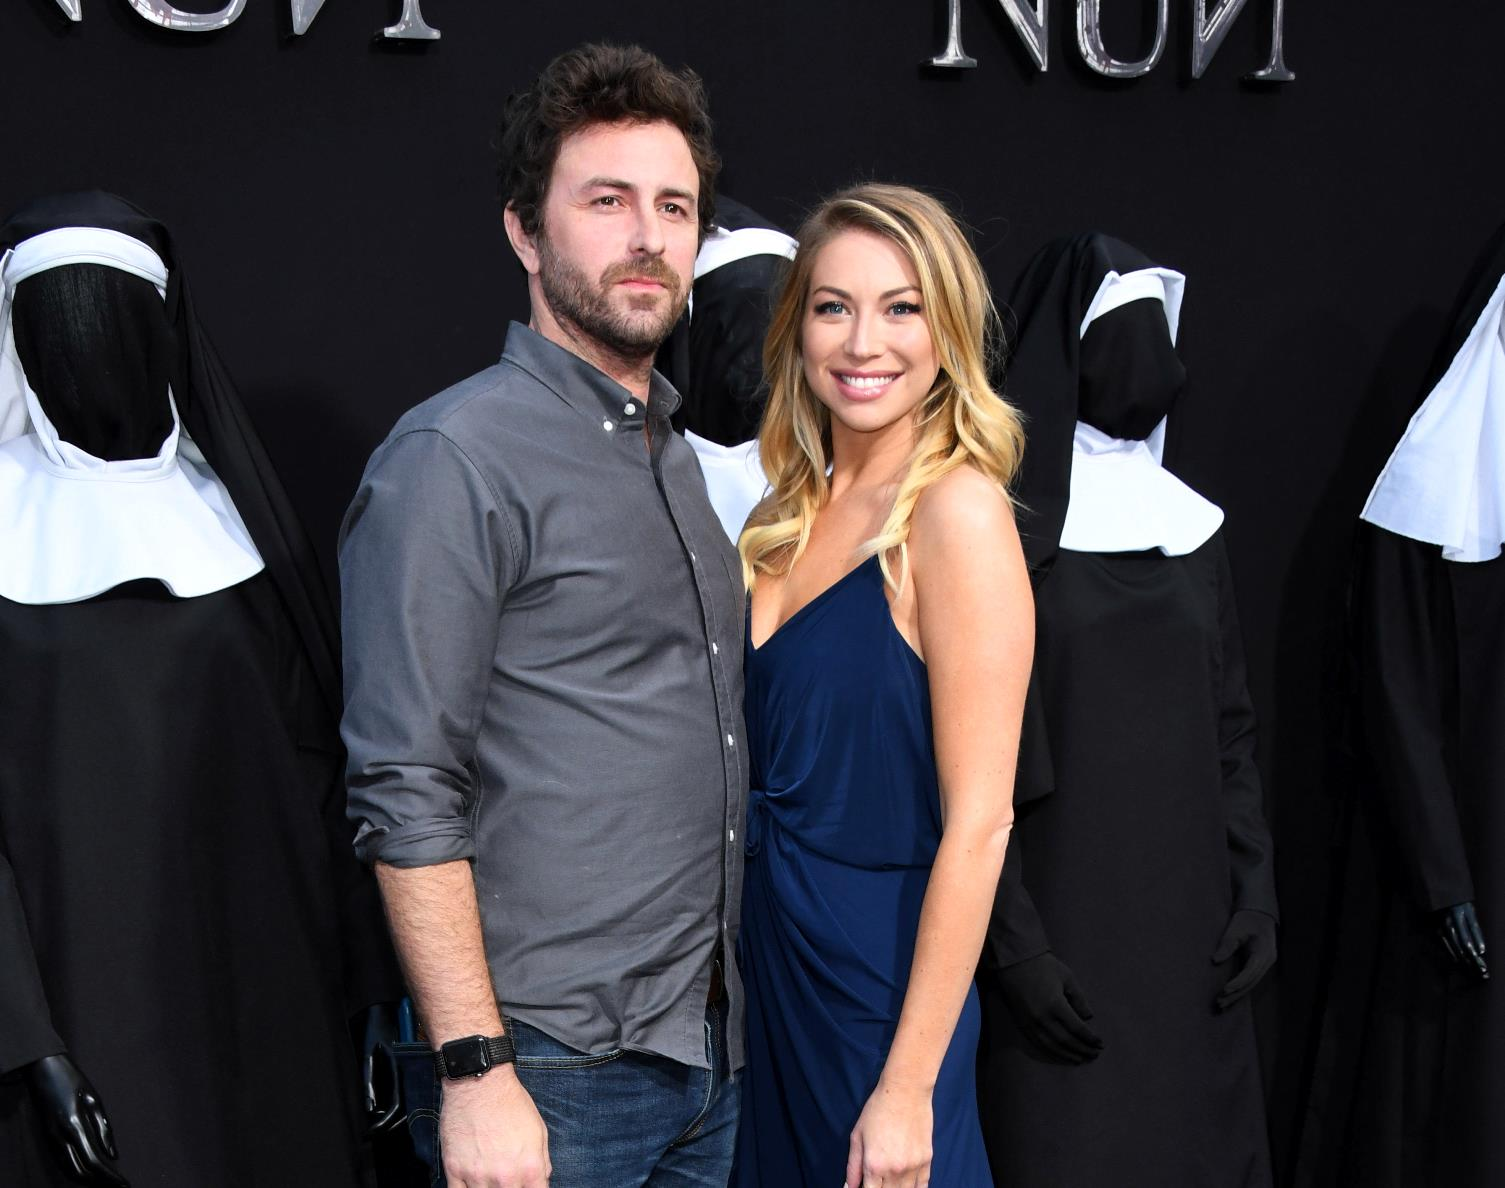 Vanderpump Rules Stassi Schroeder and boyfriend Beau Clark